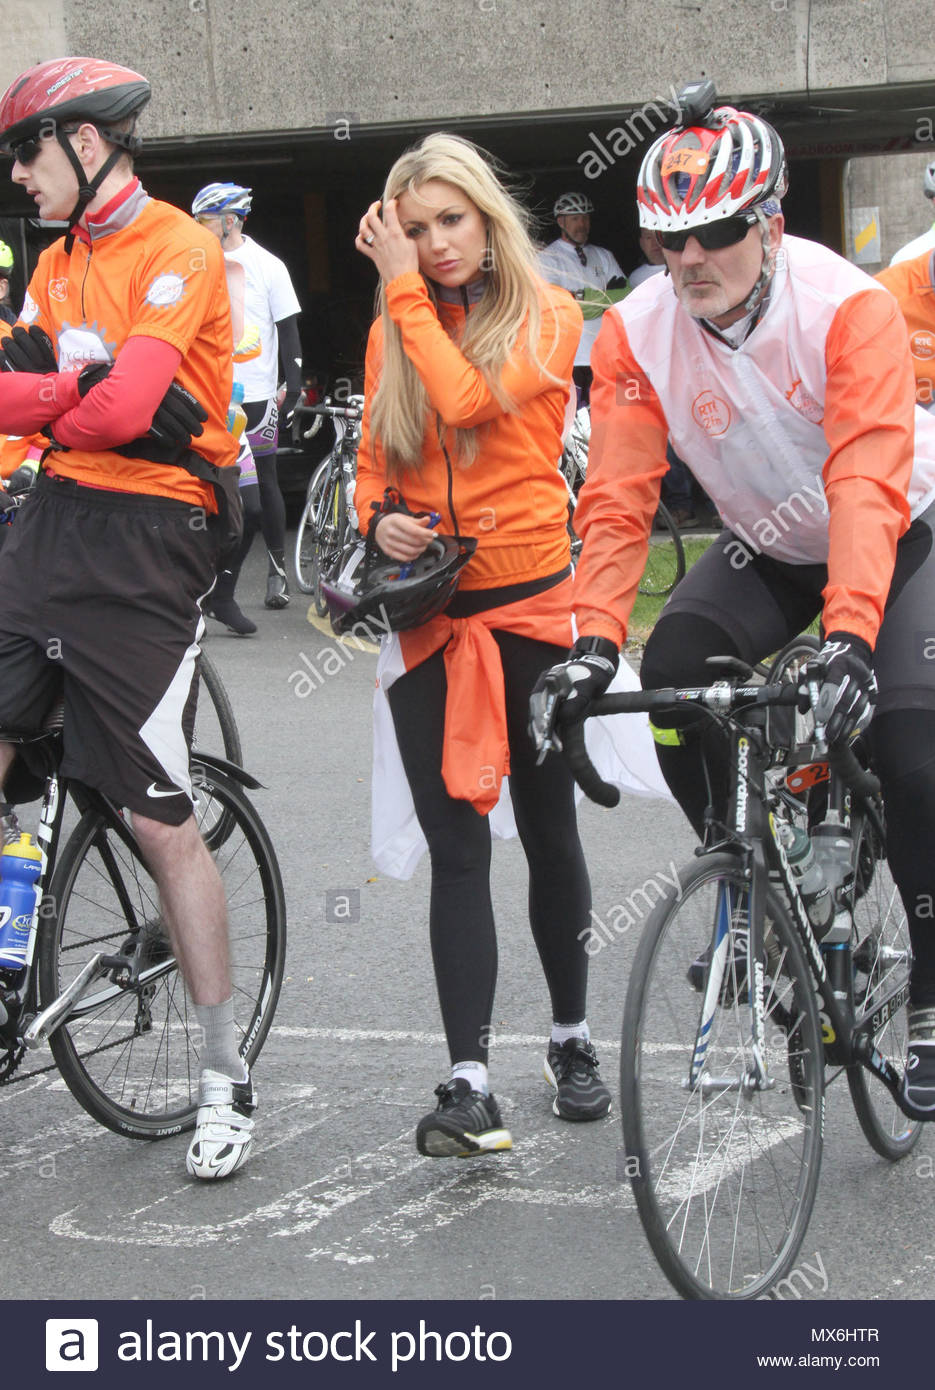 Rosanna davison former miss world and playboy girl rosanna davison rosanna davison former miss world and playboy girl rosanna davison does a charity cycle this morning for charity she cycled on a tandem 12 miles from altavistaventures Choice Image